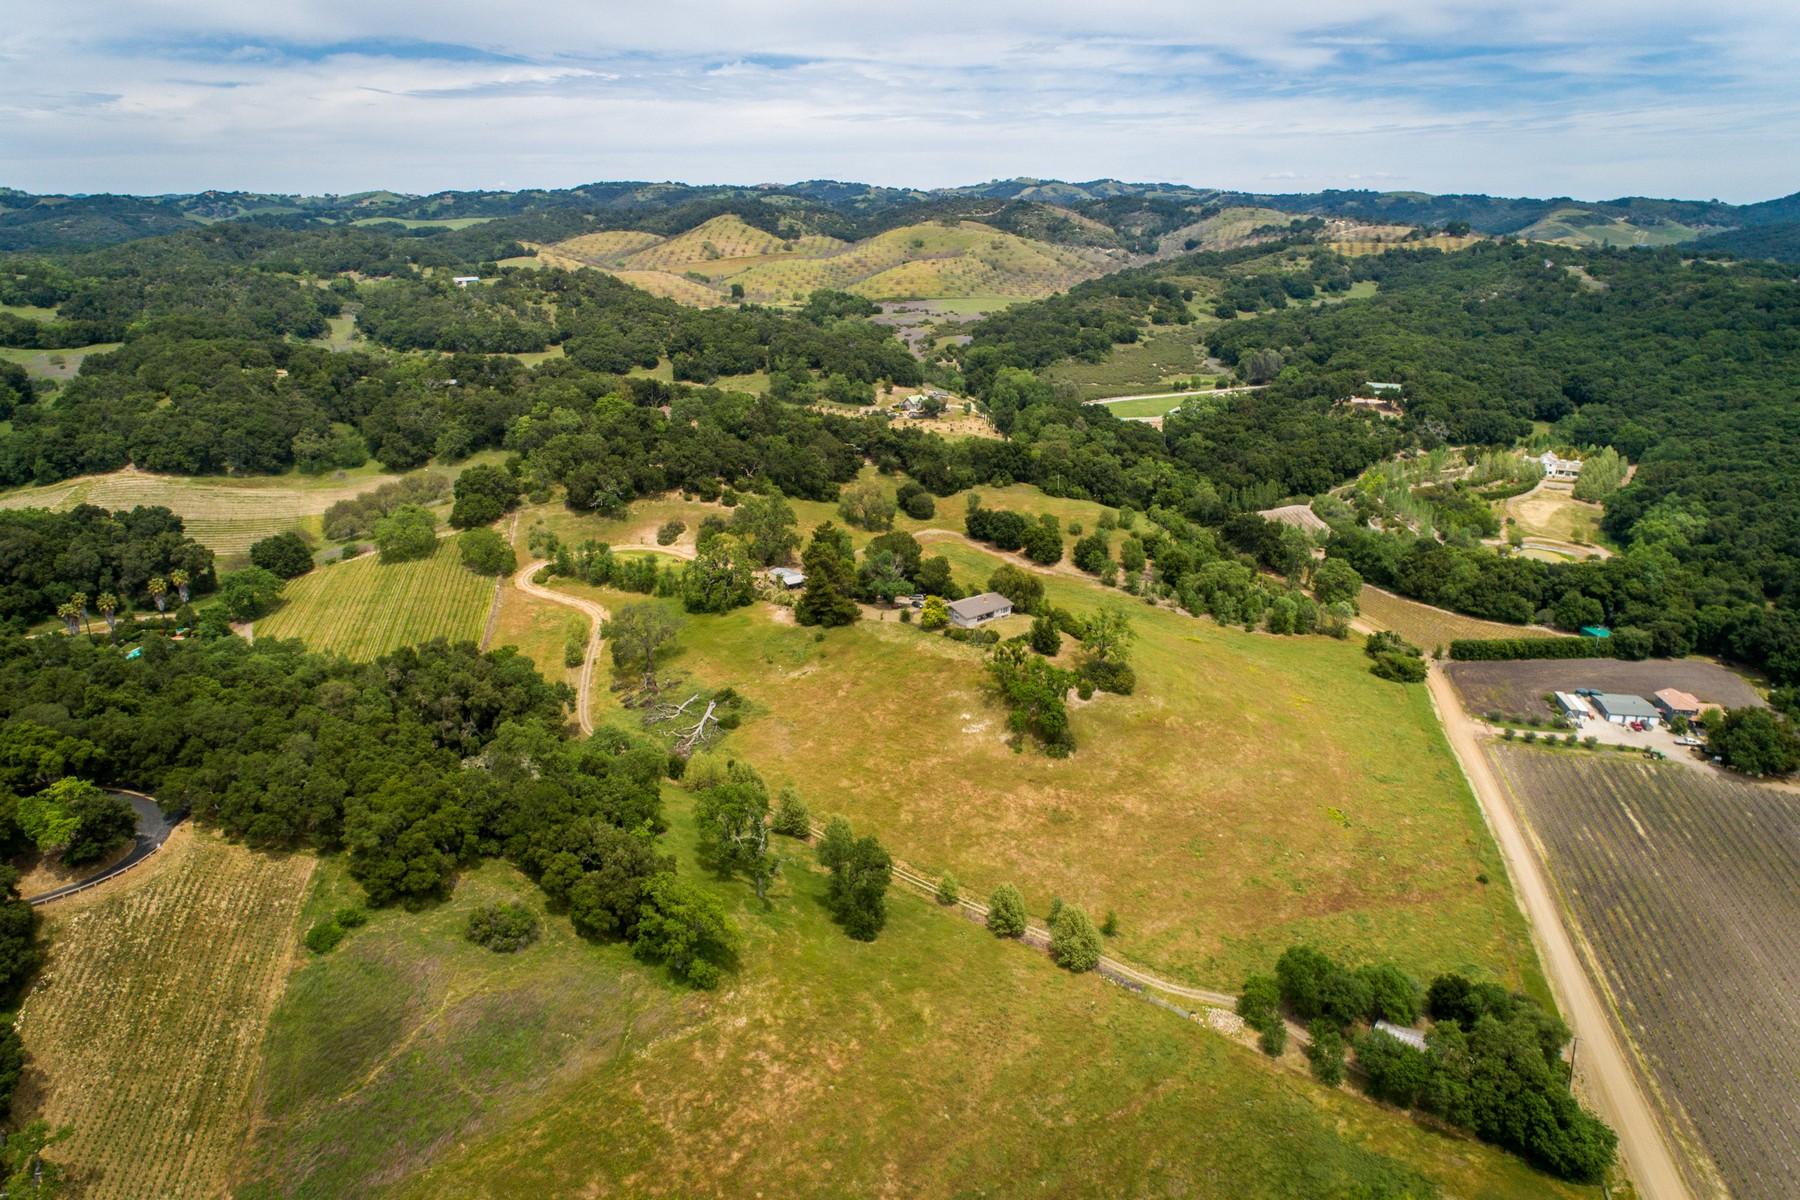 Single Family Homes for Sale at 31± Acre Wine Country Ranch 1221 Jensen Road Paso Robles, California 93446 United States